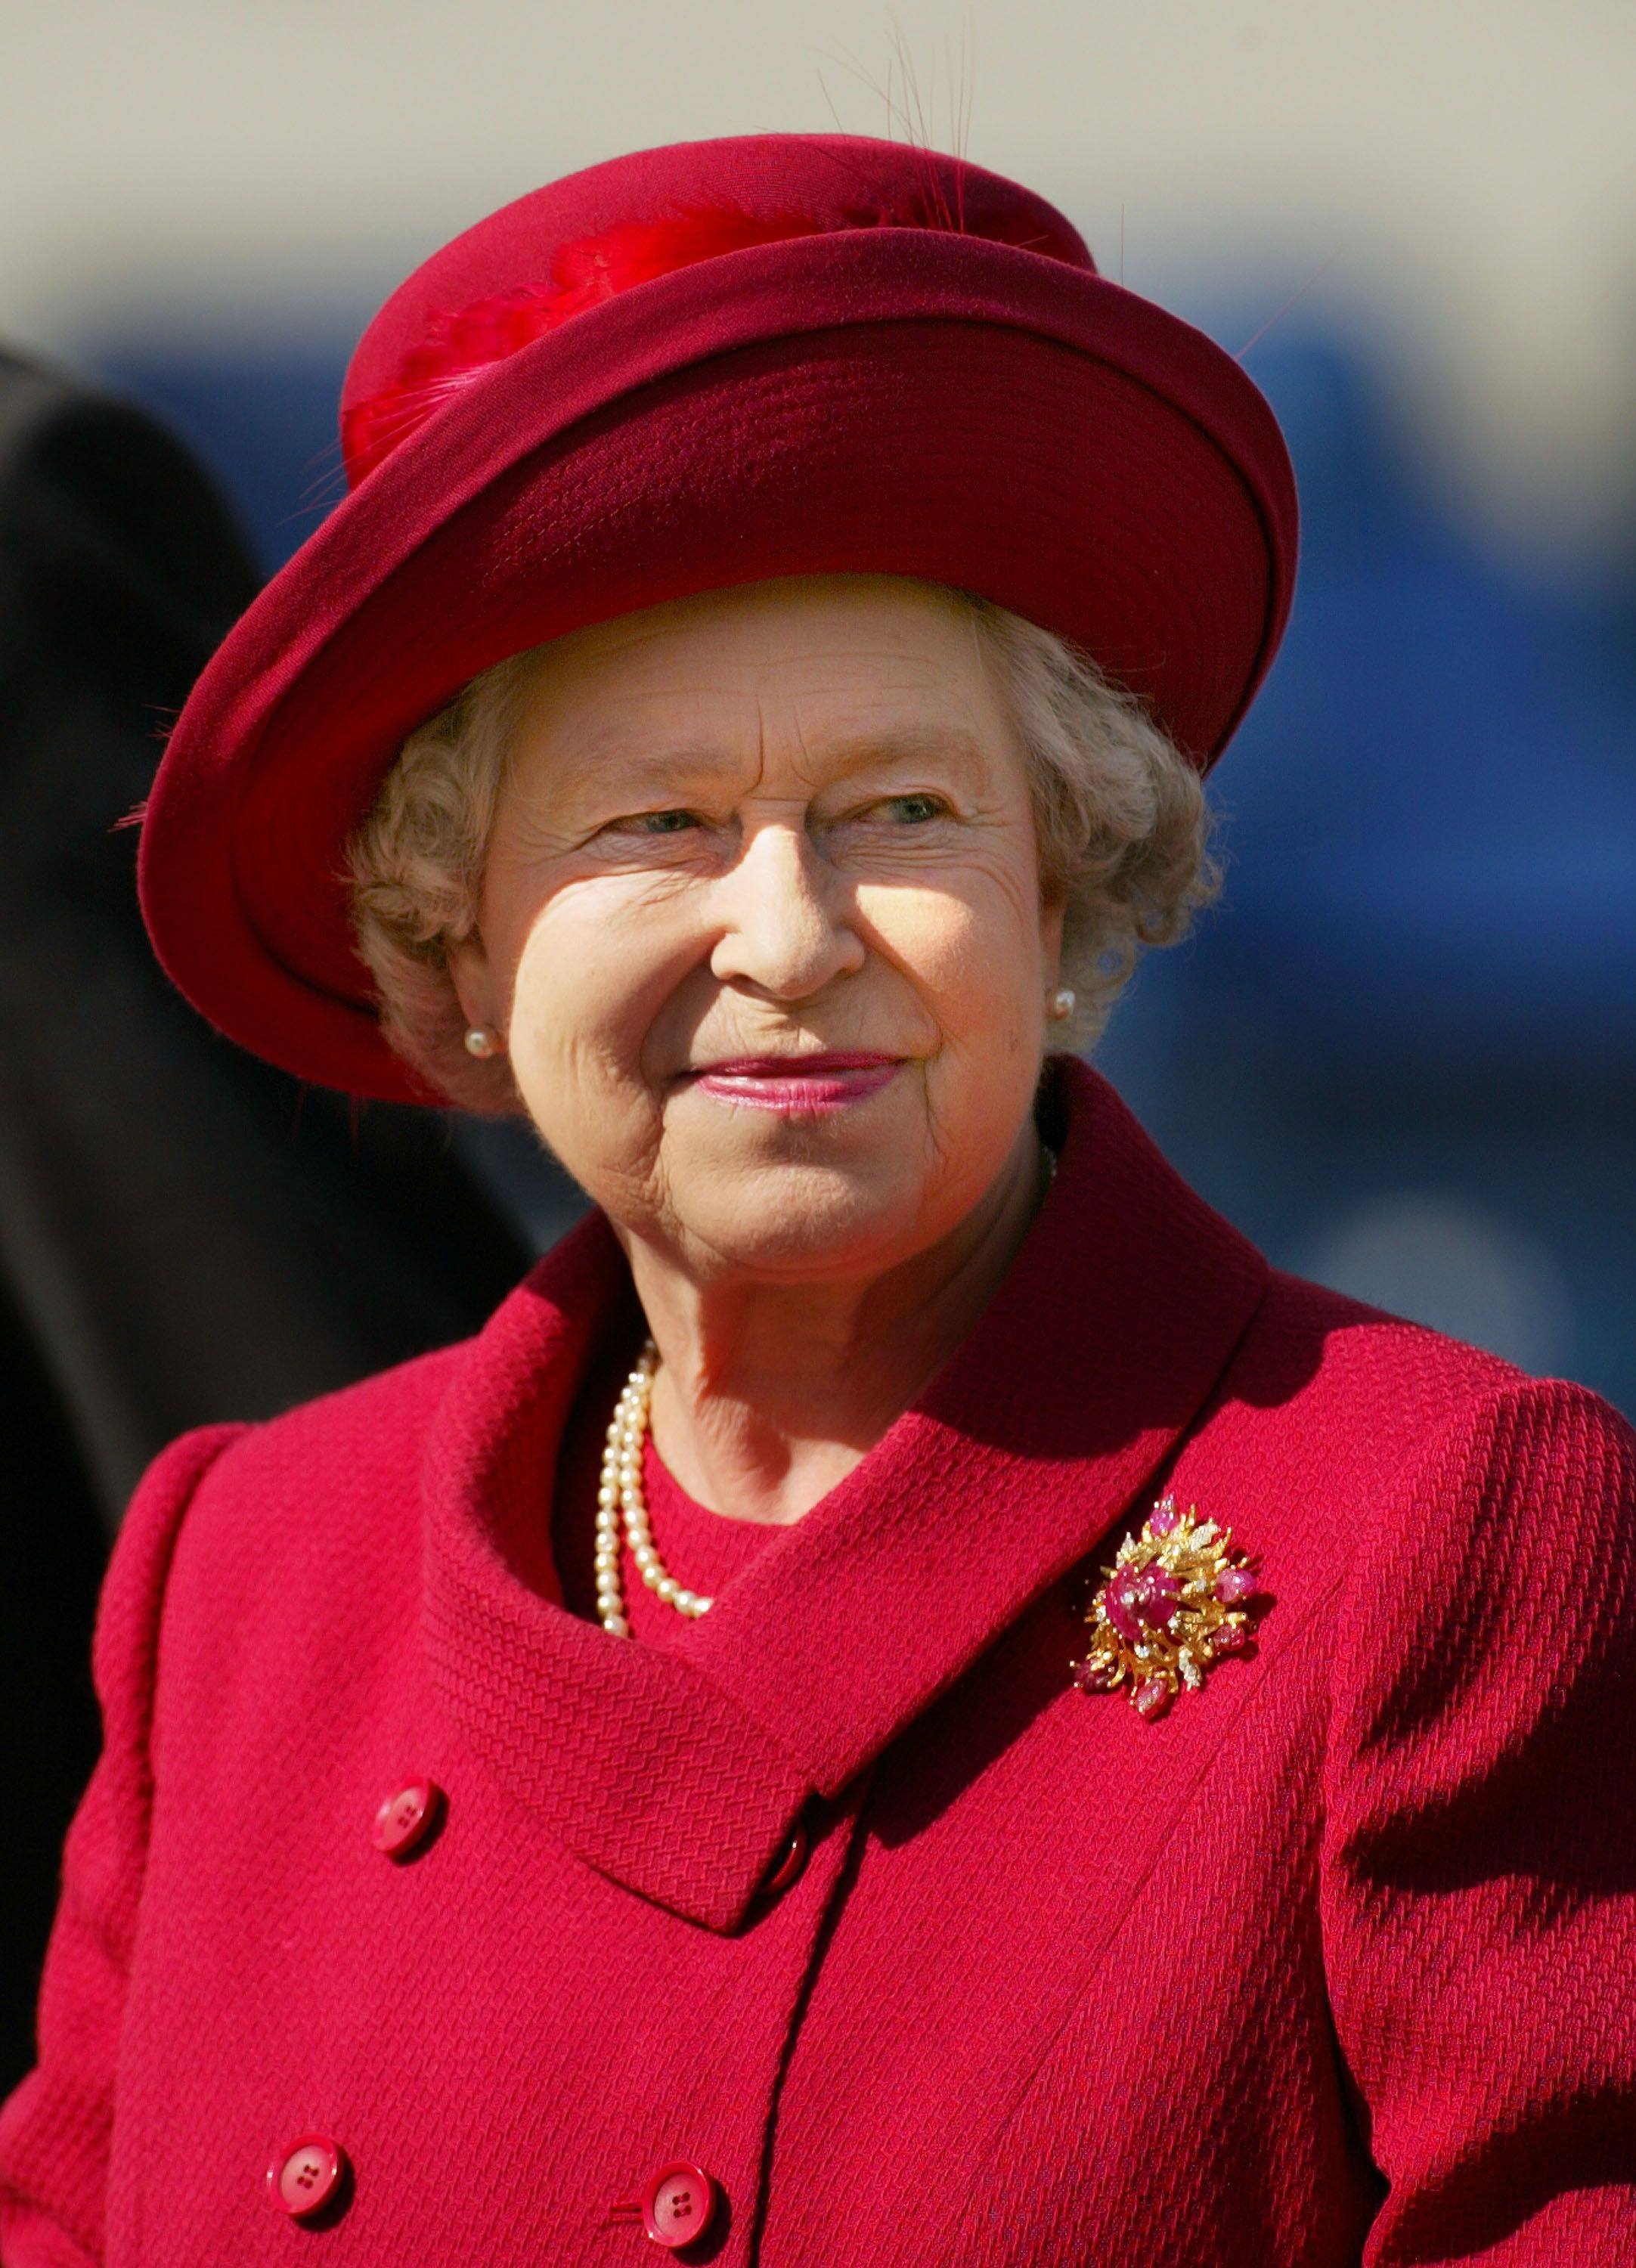 """Queen Elizabeth smiles May 18, 2002 after presenting a trophy for the """"best turned out trooper"""" to a Household Cavalry soldier at The Royal Windsor Horse Show at Windsor Great Park, England 